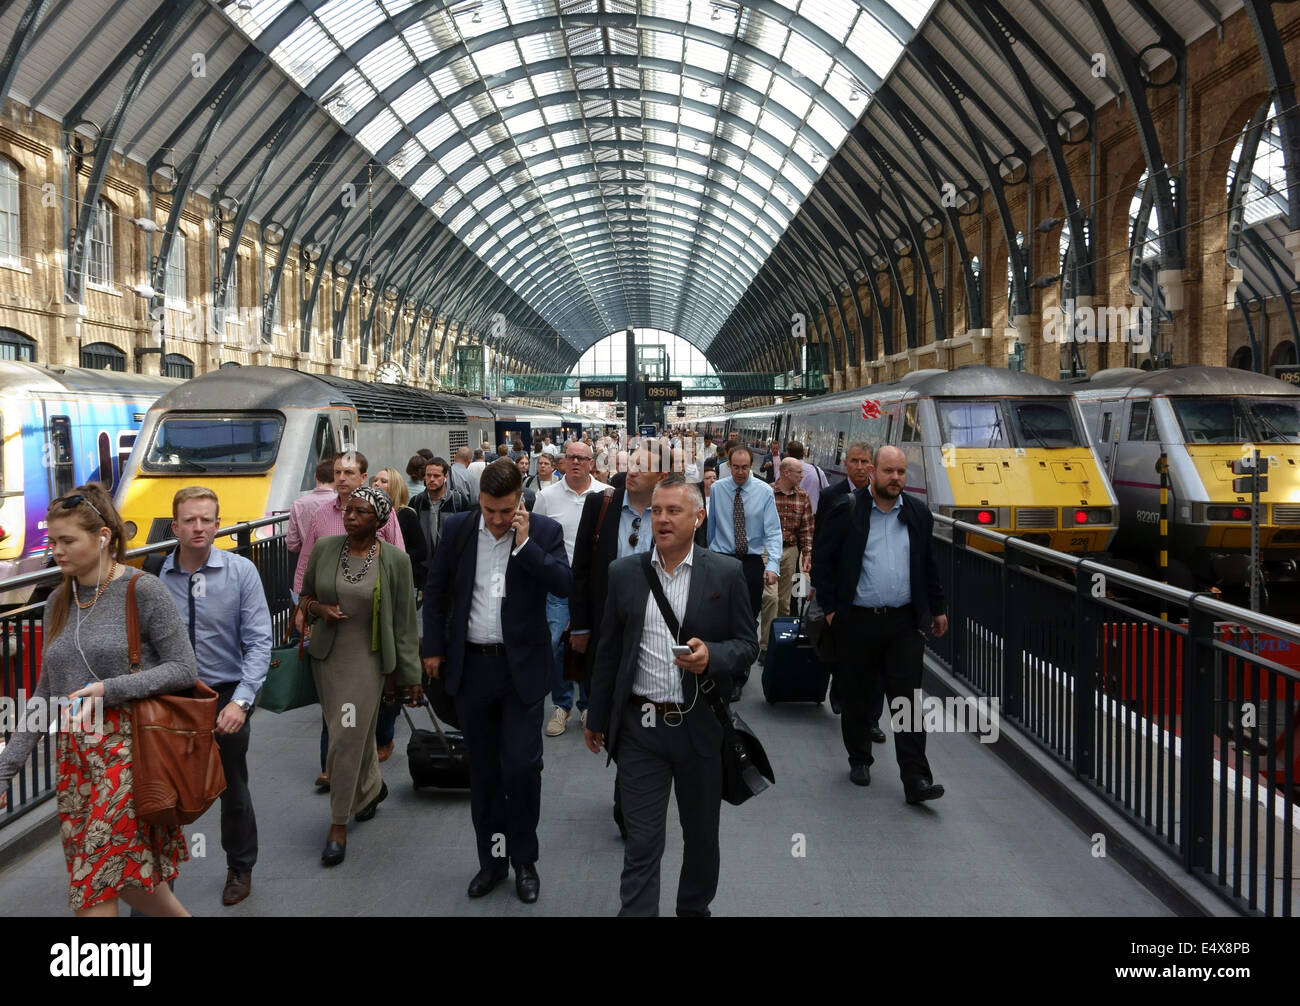 Passengers arriving off train at King's Cross Station, London - Stock Image